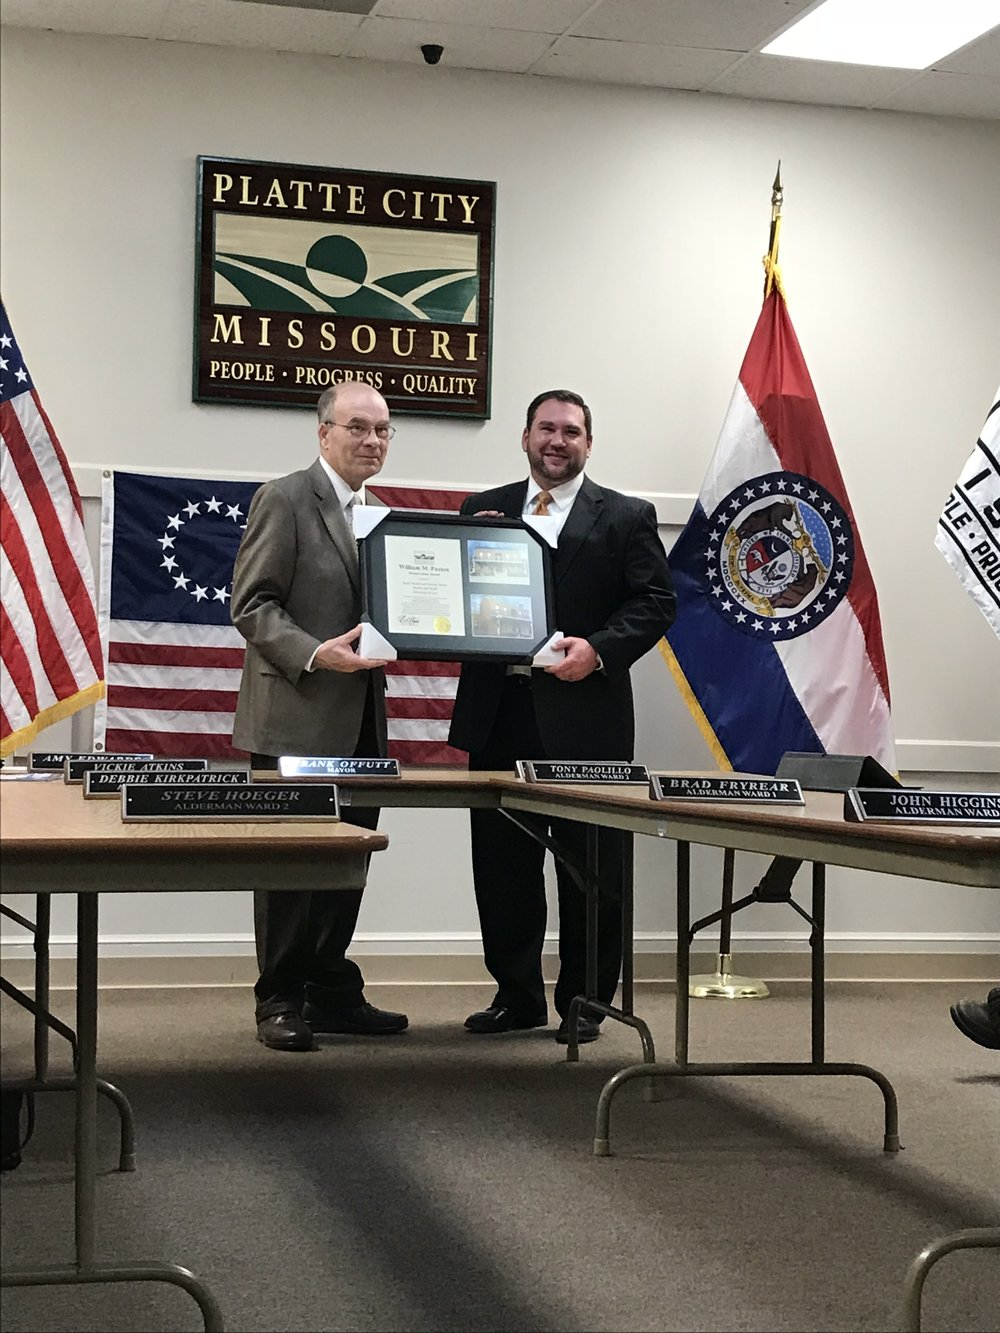 CODY THORN/Citizen photo Platte City mayor Frank Offutt, left, presents a framed photo to Jeremy Webb of Welch and Webb Law Firm during the Platte City Board of Aldermen meeting held on Tuesday, March 27.